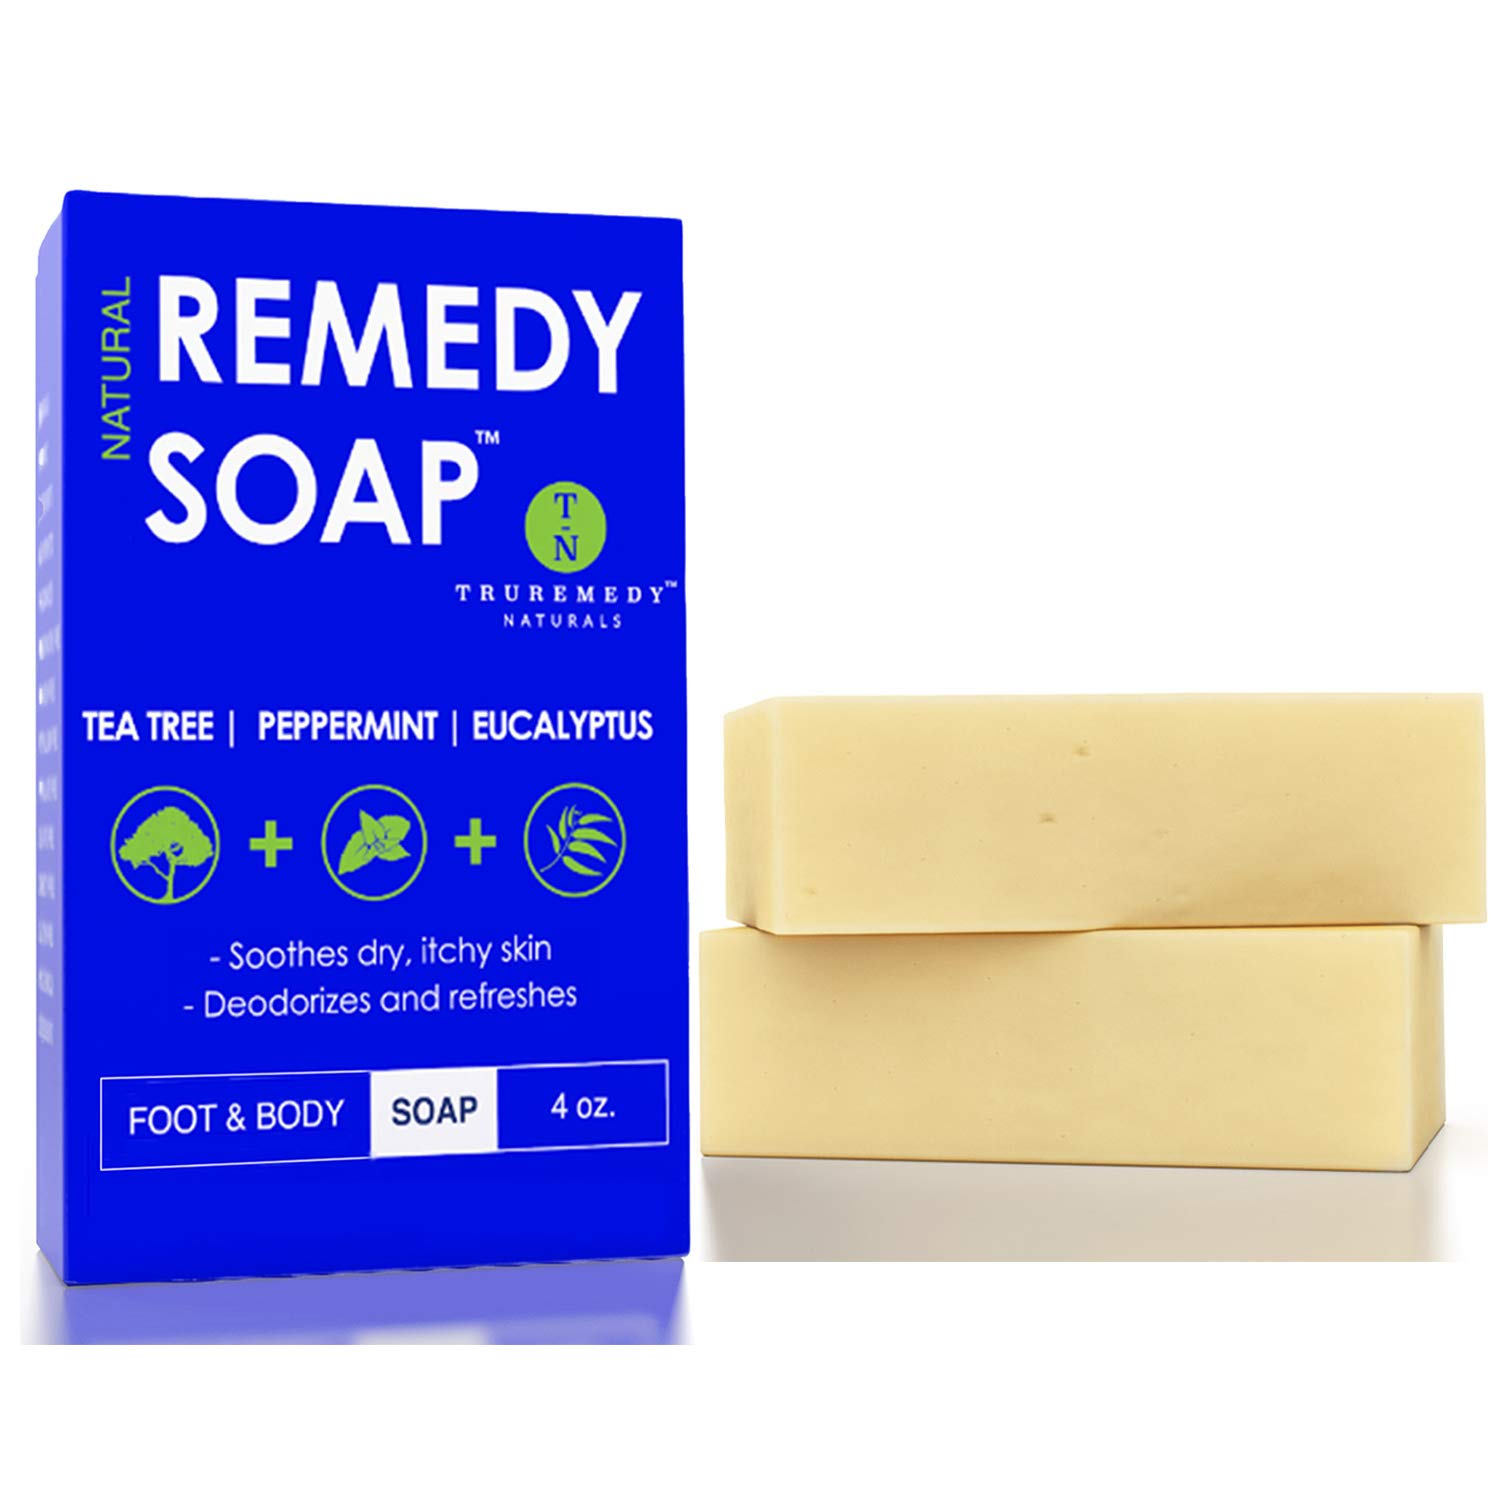 Remedy Natural Tea Tree Oil Soap Bar for Men/Women (Pack of 2) – w/Peppermint & Eucalyptus - Face & Body Soap for Acne, Body Odor, Skin Irritations & All Skin Types by Truremedy Naturals